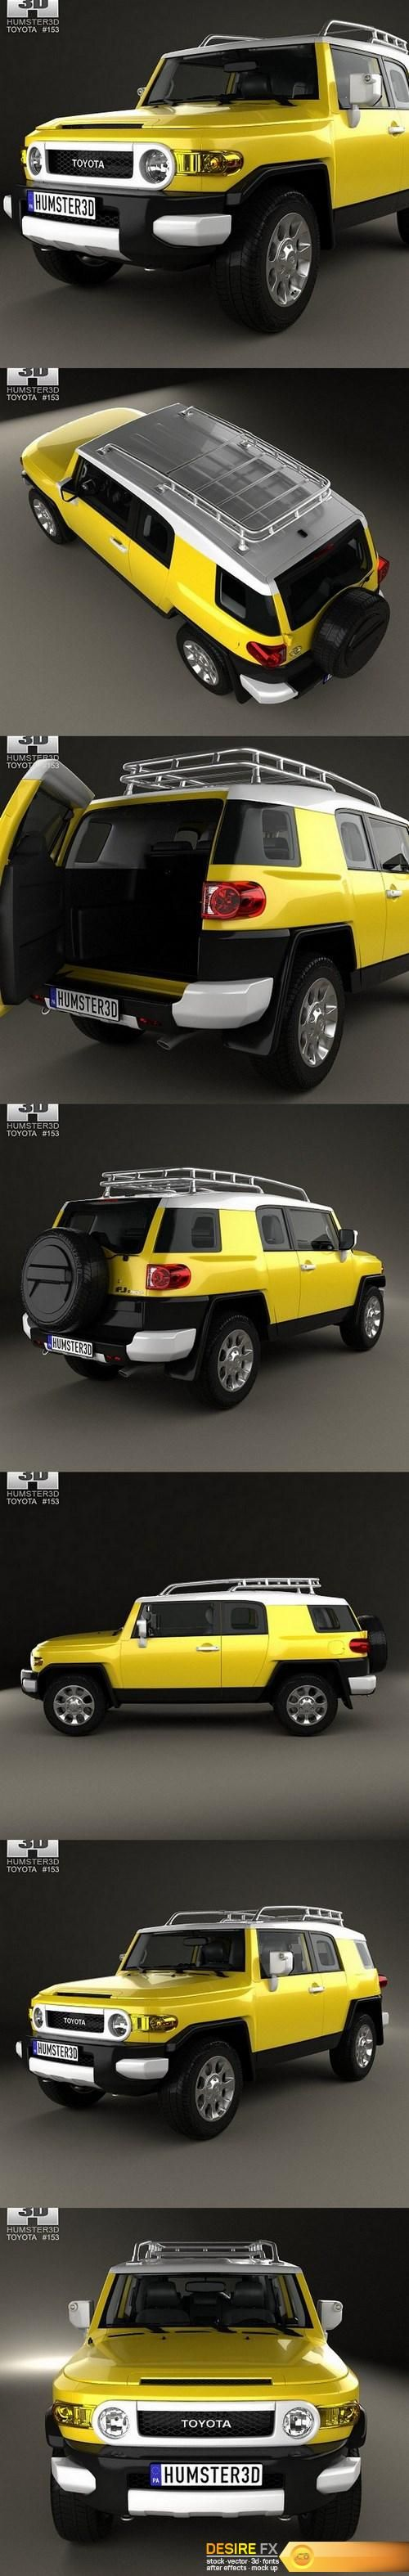 Toyota FJ Cruiser HQ interior 2010 3D Model  http://www.desirefx.me/toyota-fj-cruiser-hq-interior-2010-3d-model/